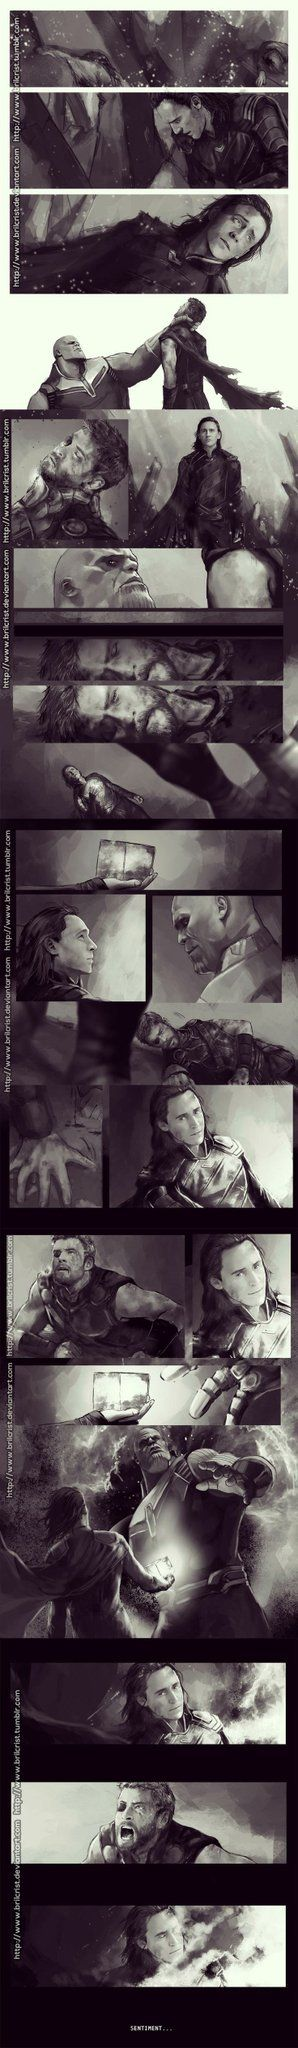 If Loki gives him the Tesseract to save Thor, I would be fine with this. I would still cry because Loki is amazing.